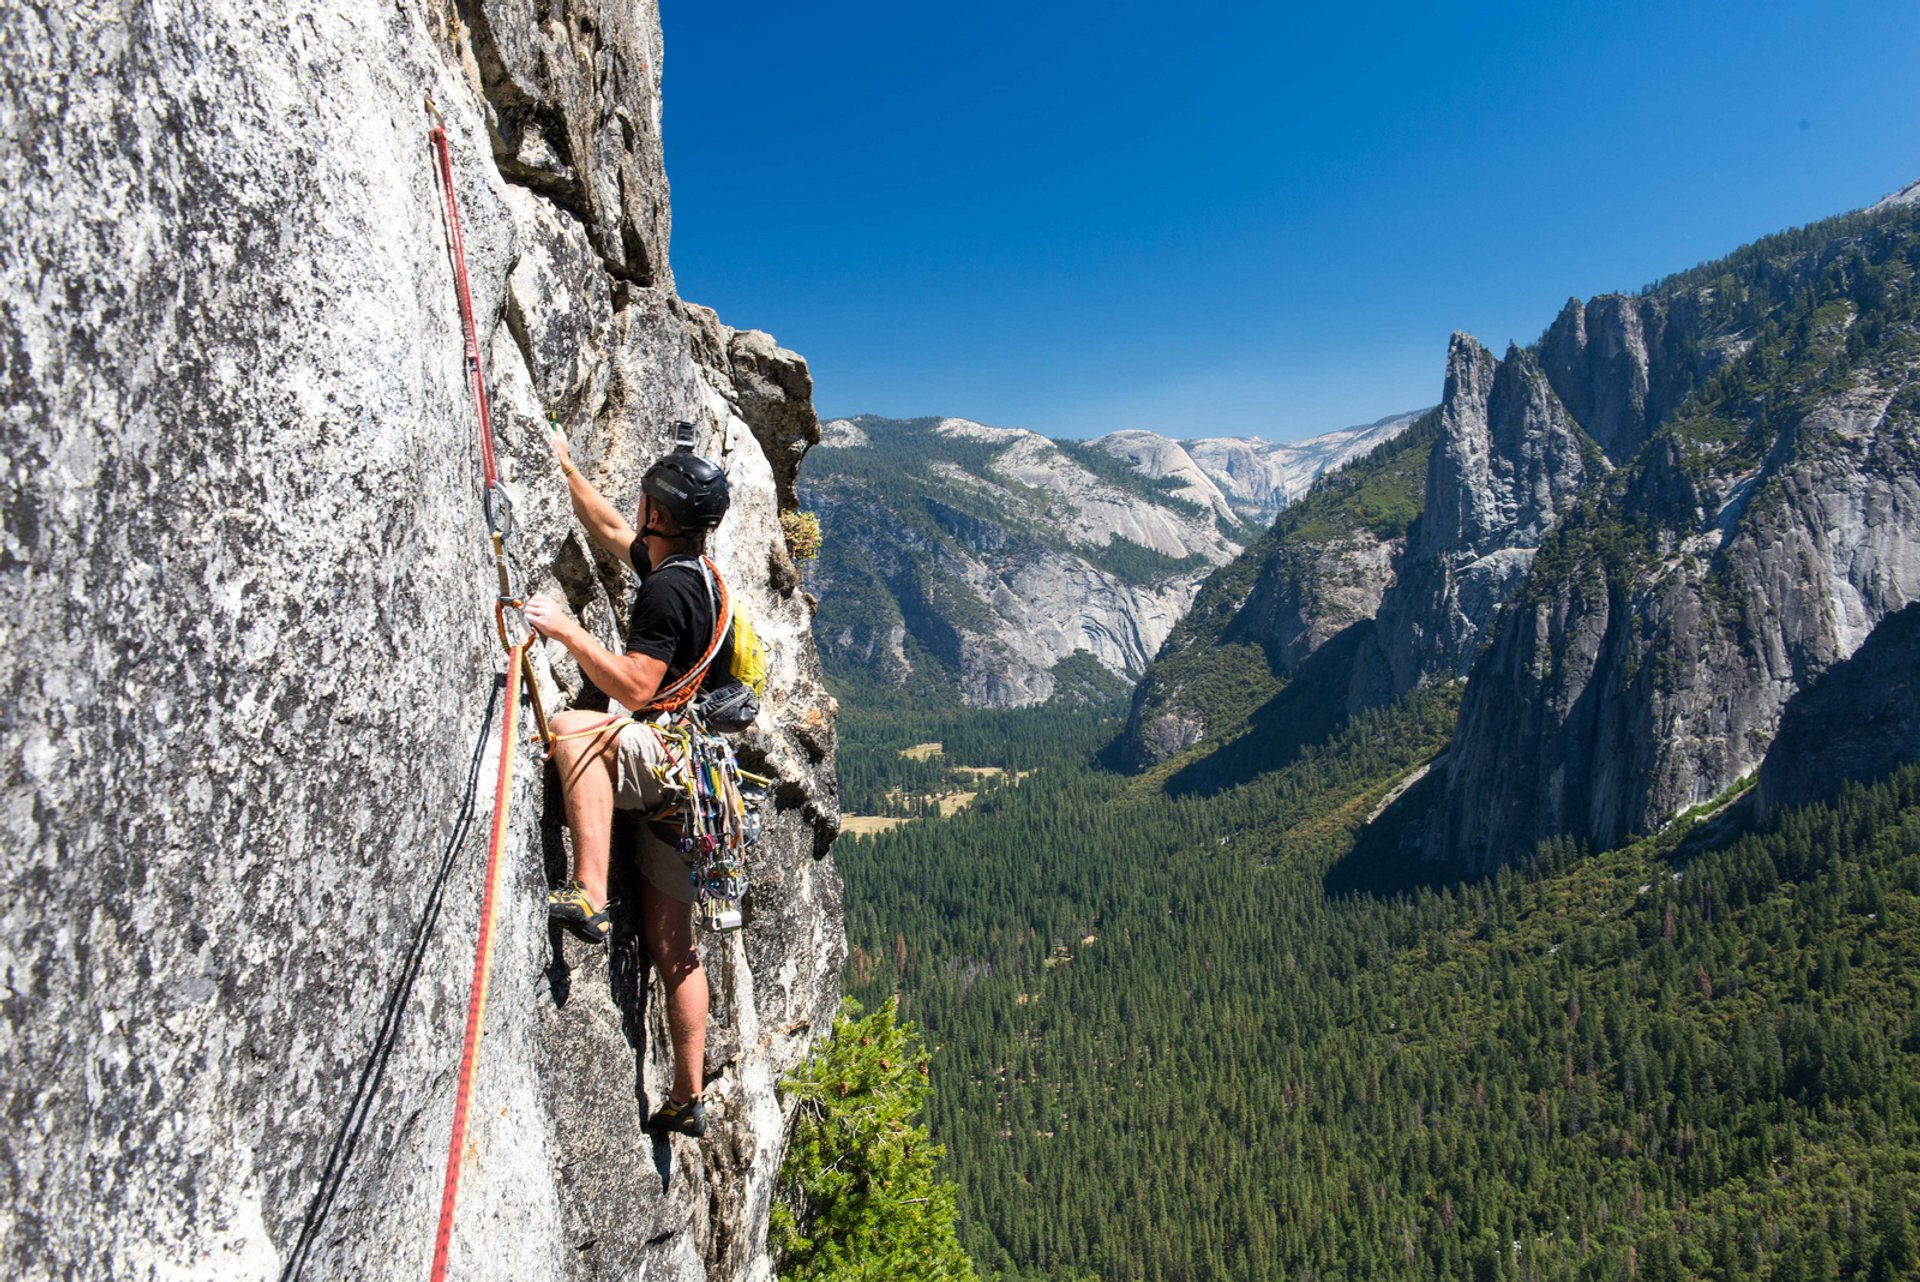 Rock Climbing in Yosemite 2020 - Best Time